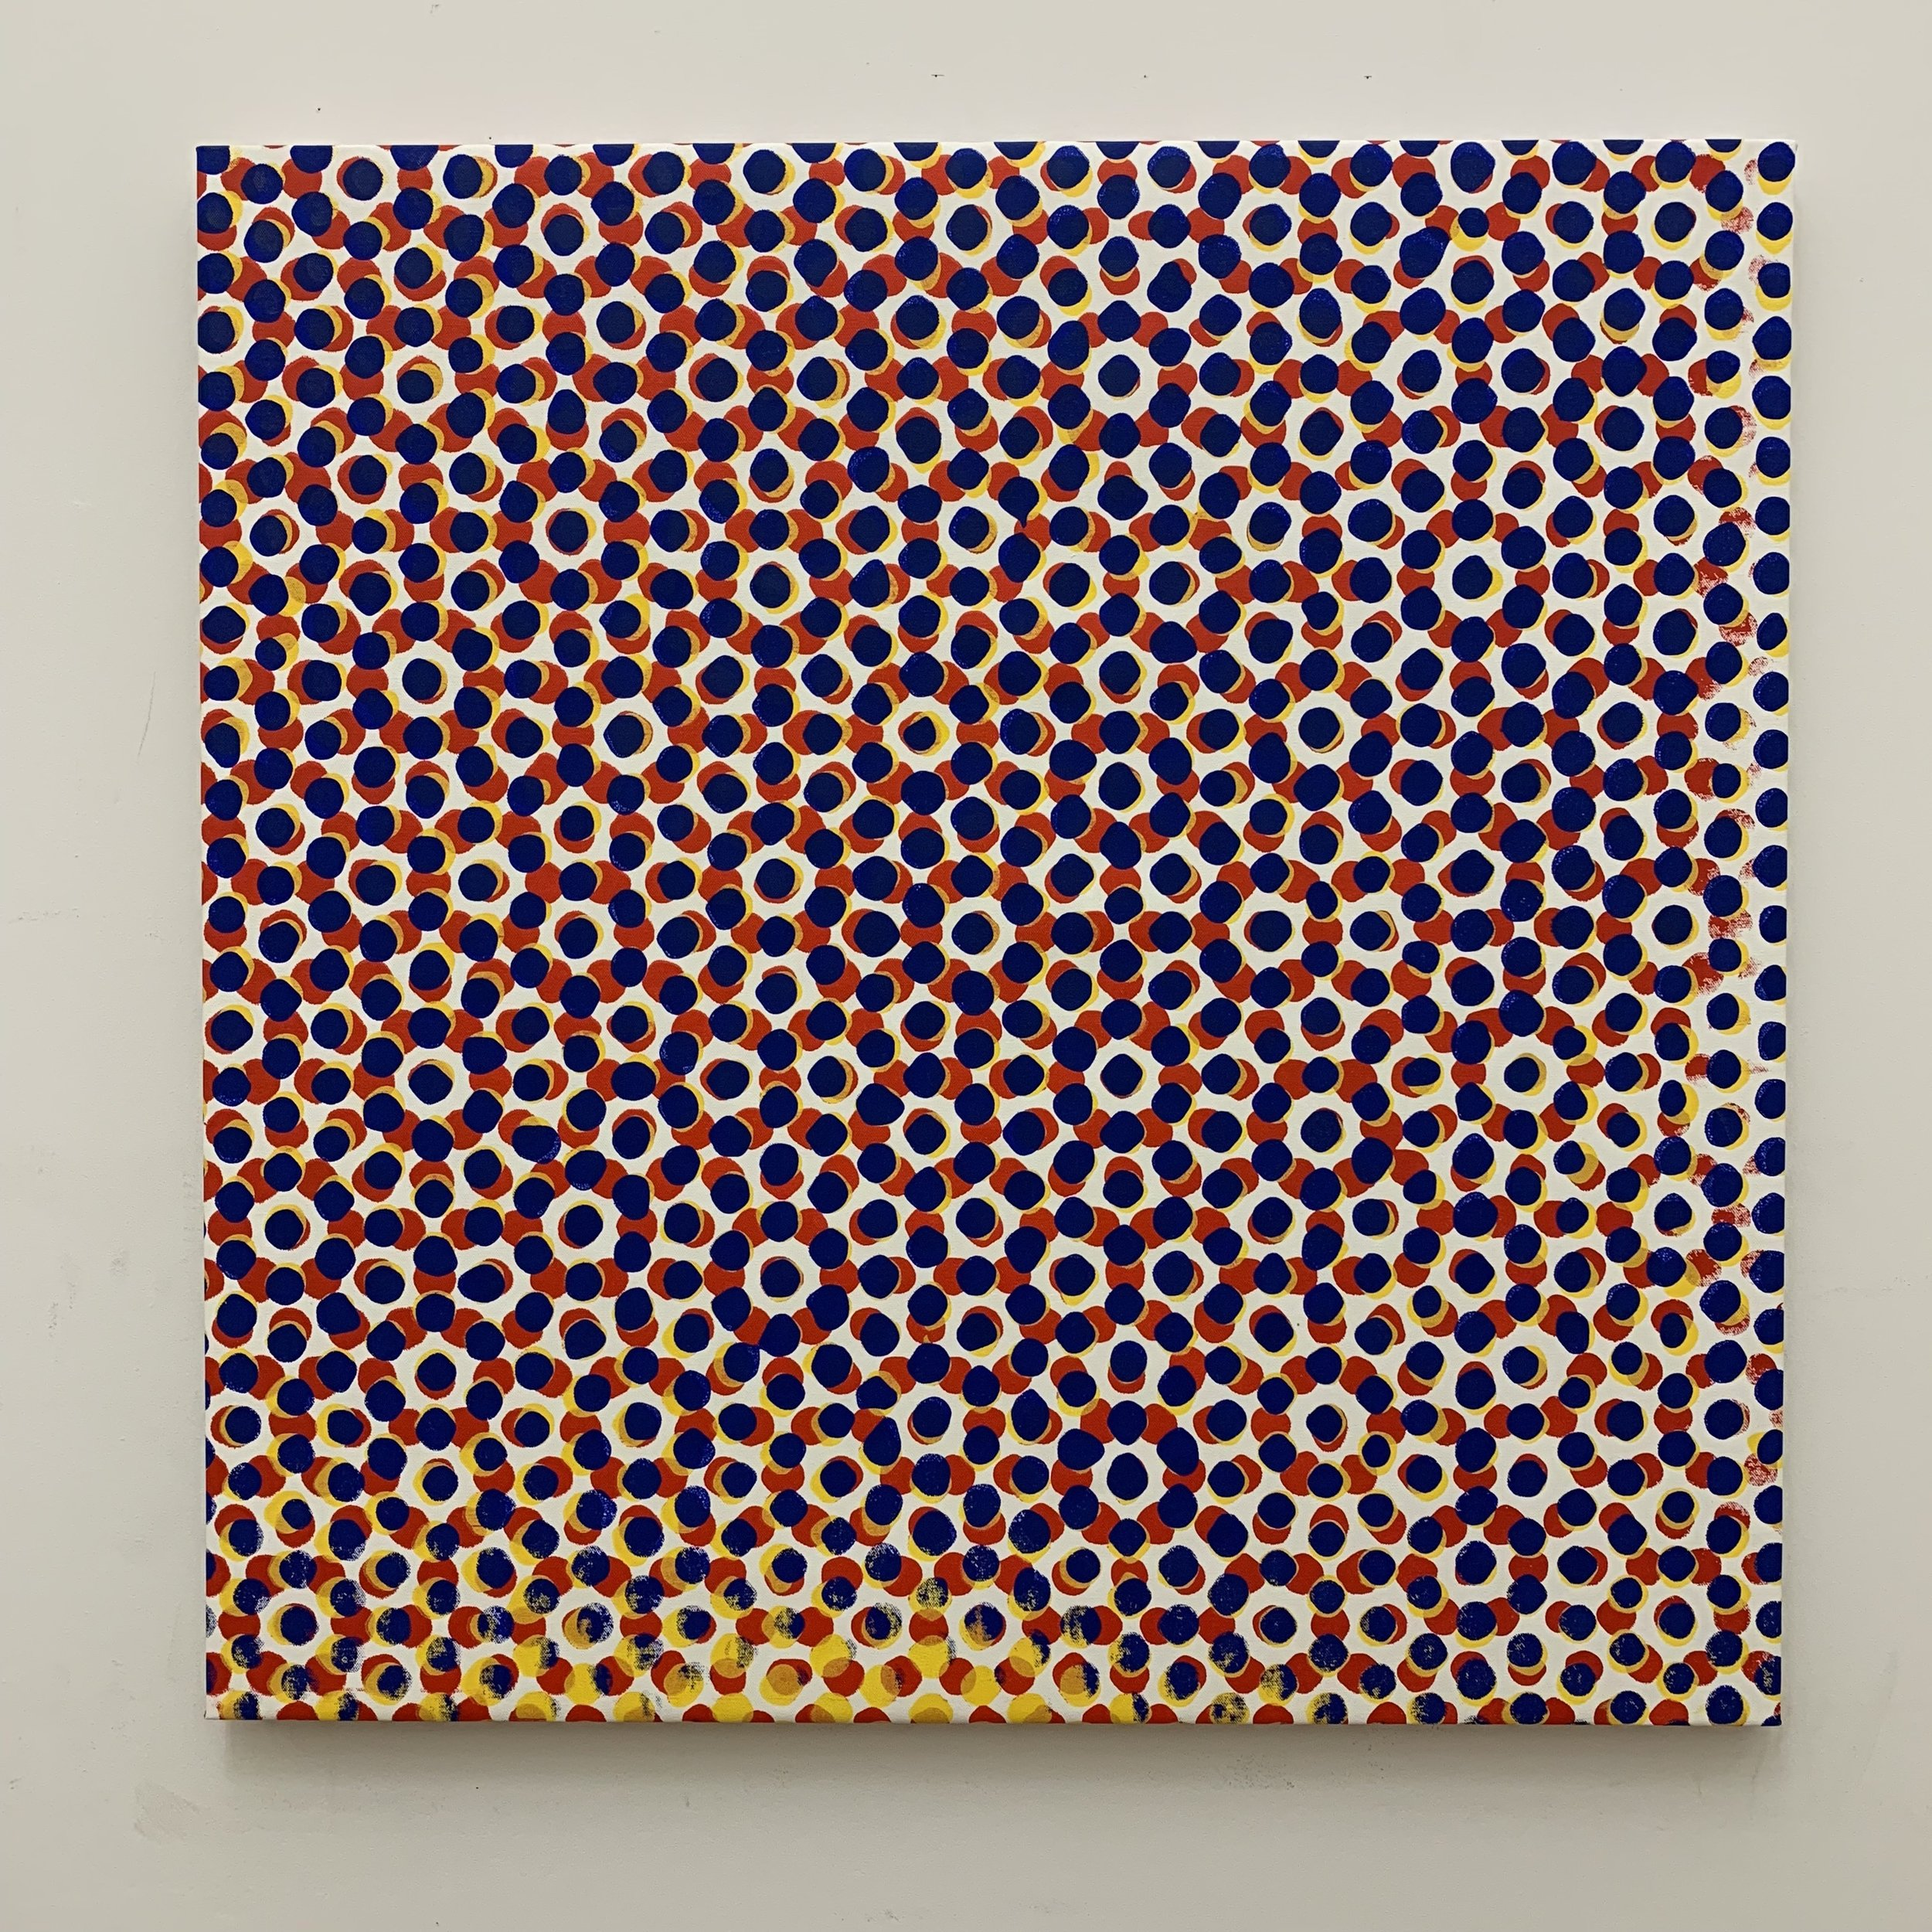 "Hanabi #3, 2019, polymer paint on canvas, 36"" x 36"" inches"